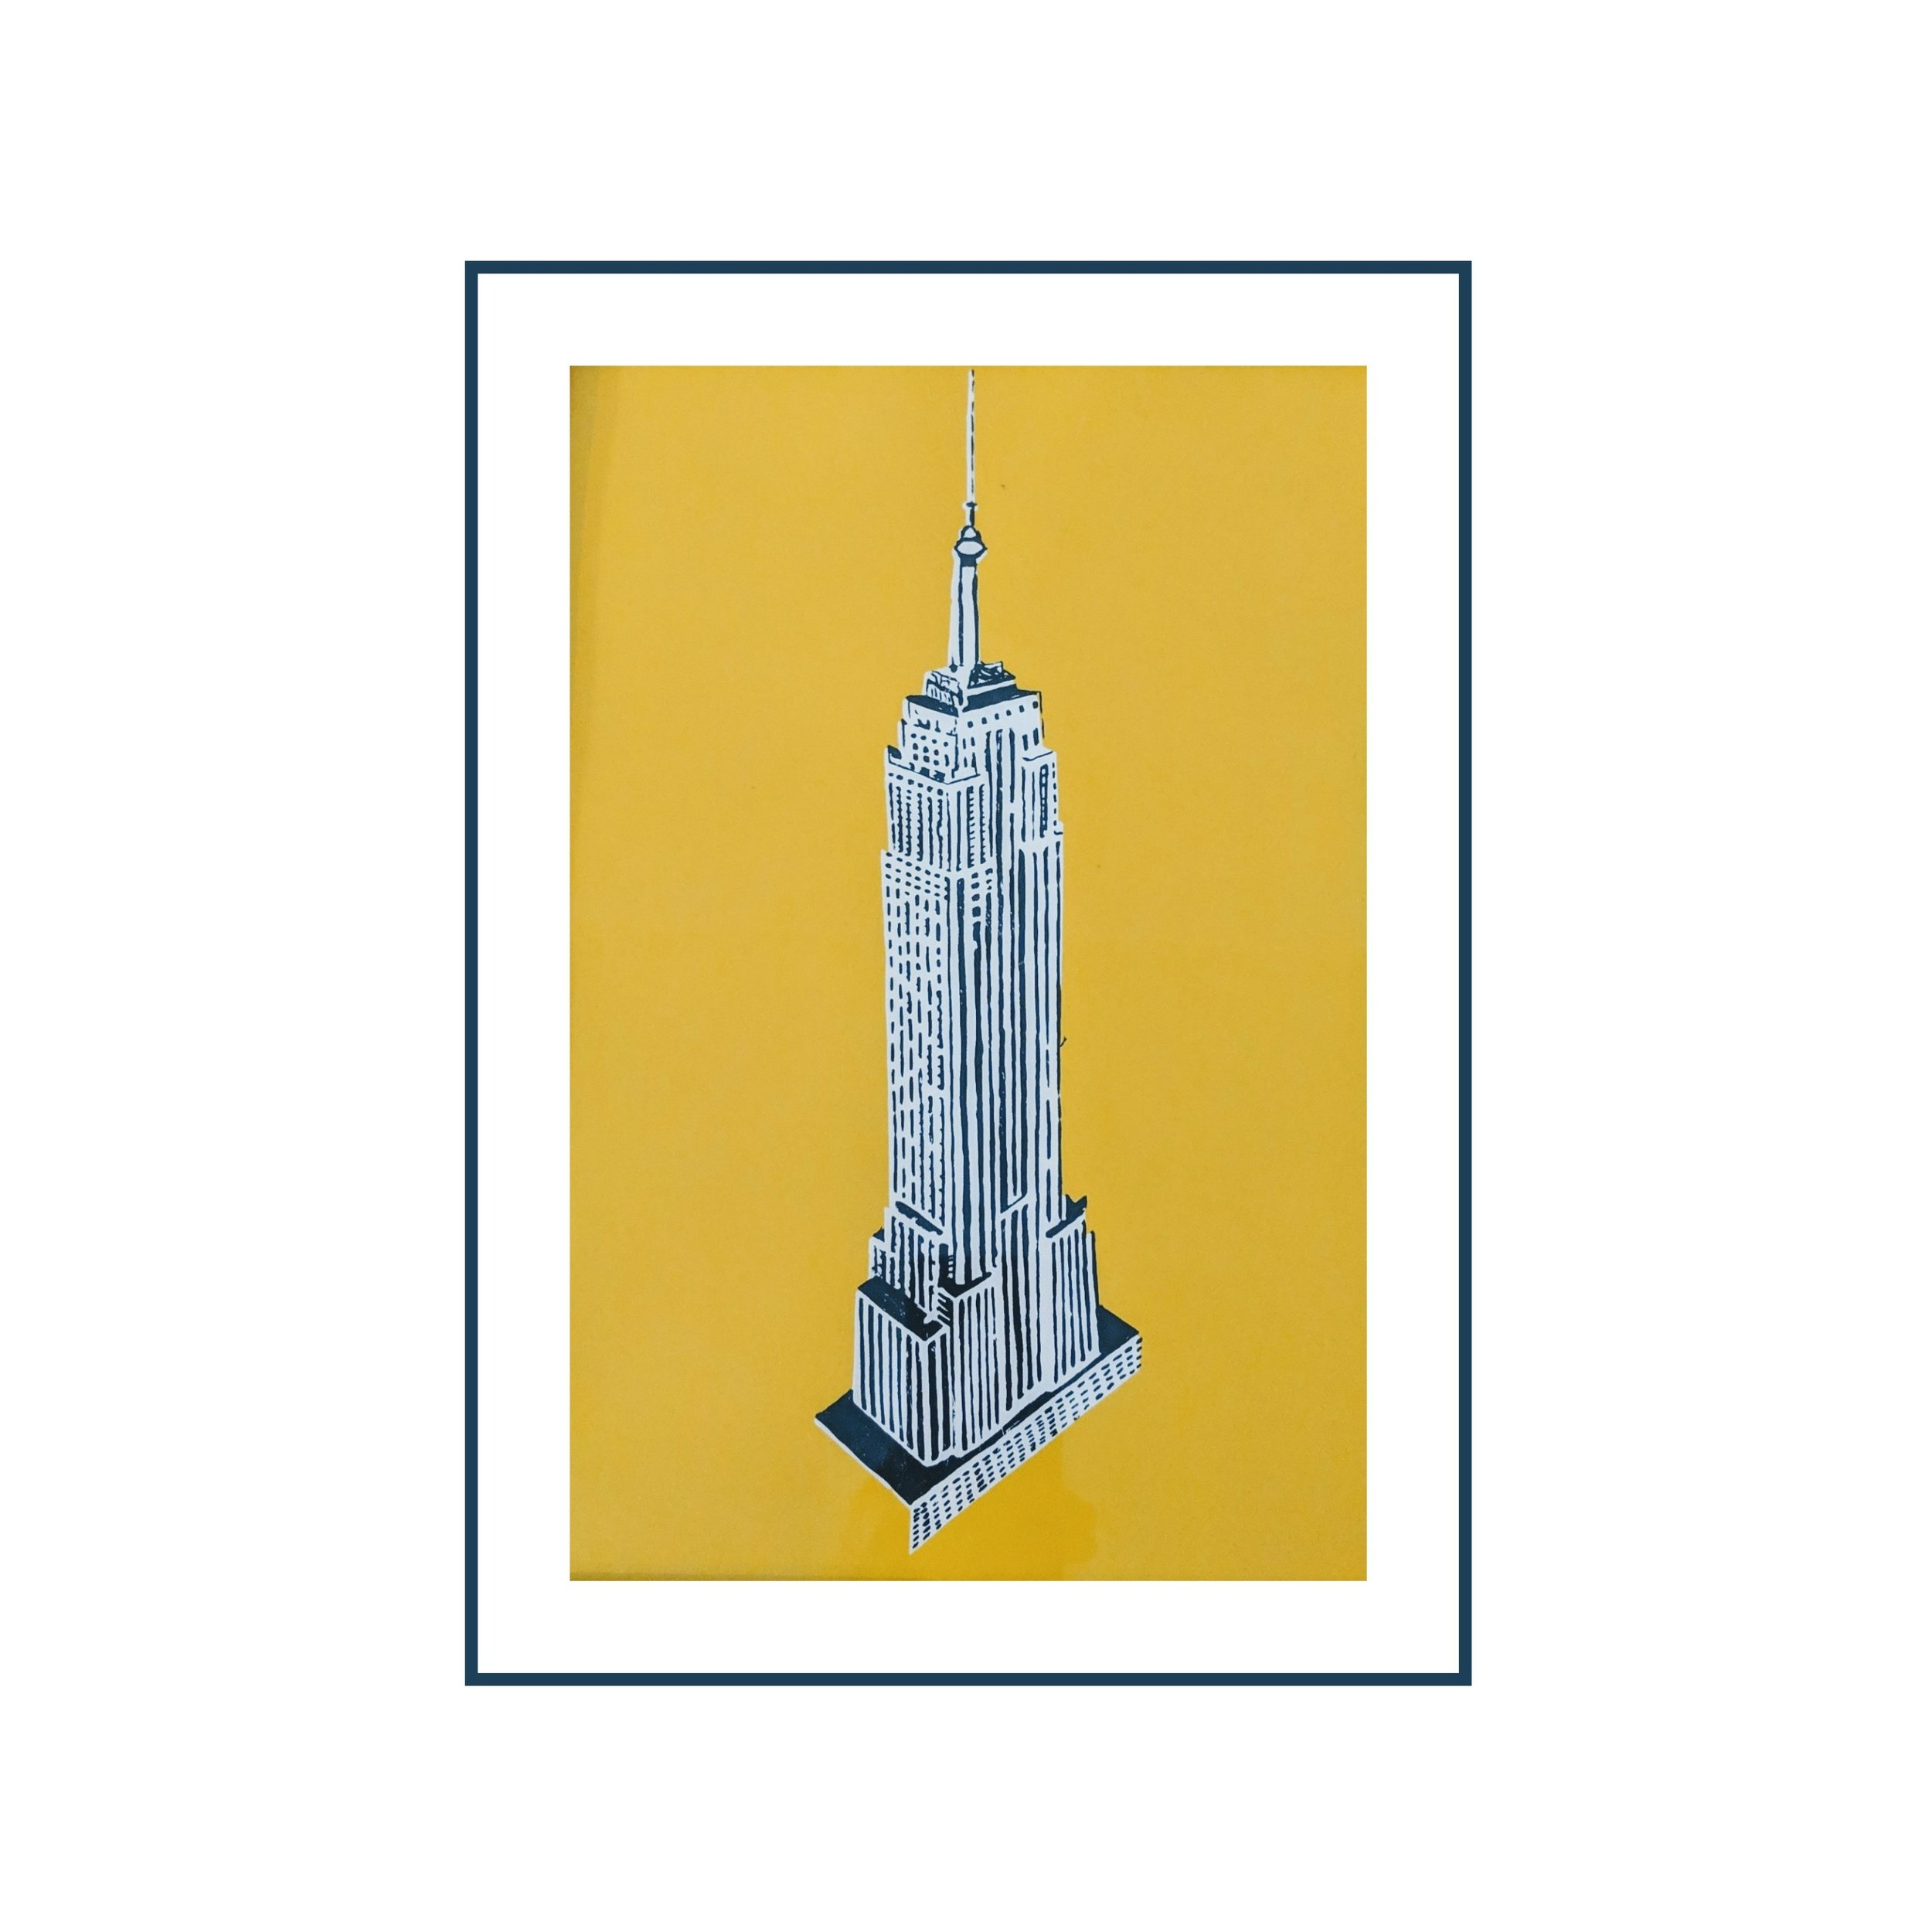 zeefdruk_limited edition_empire state building.jpg